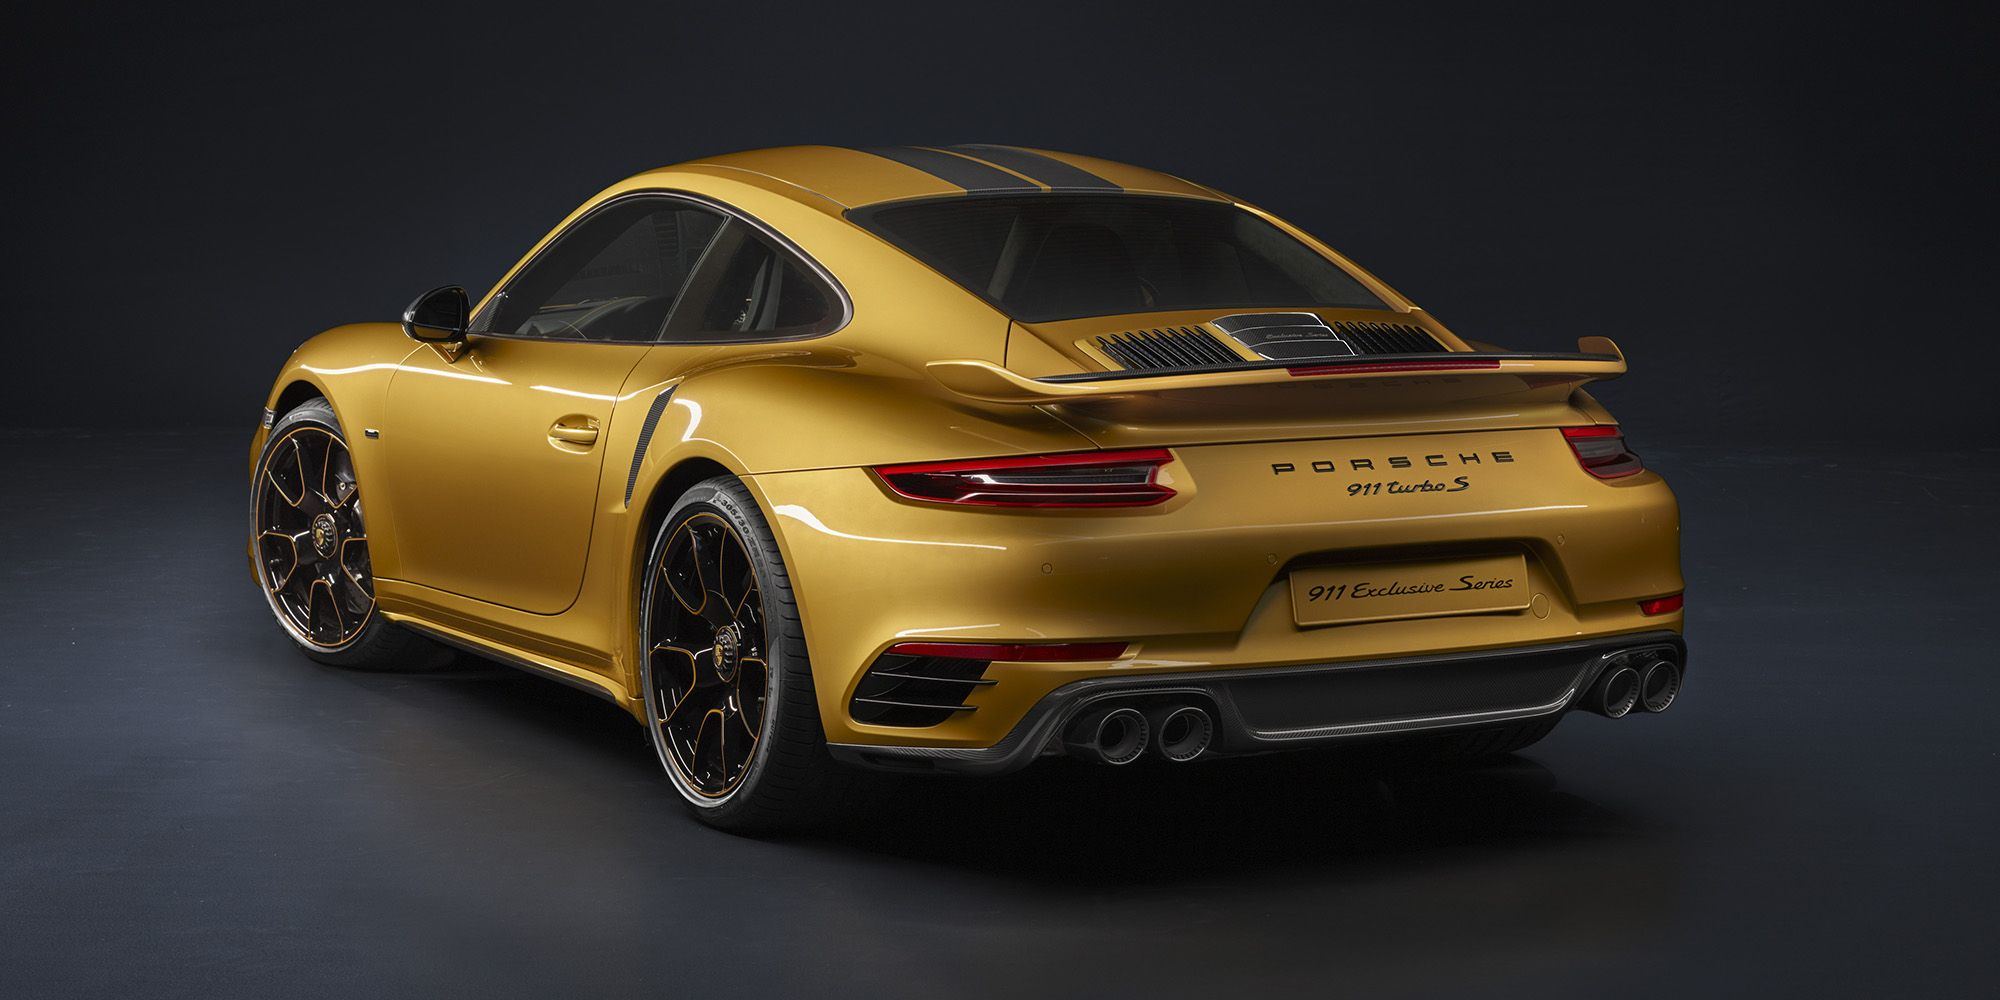 porsche gave the 911 turbo s 607 hp and some uh interesting paint